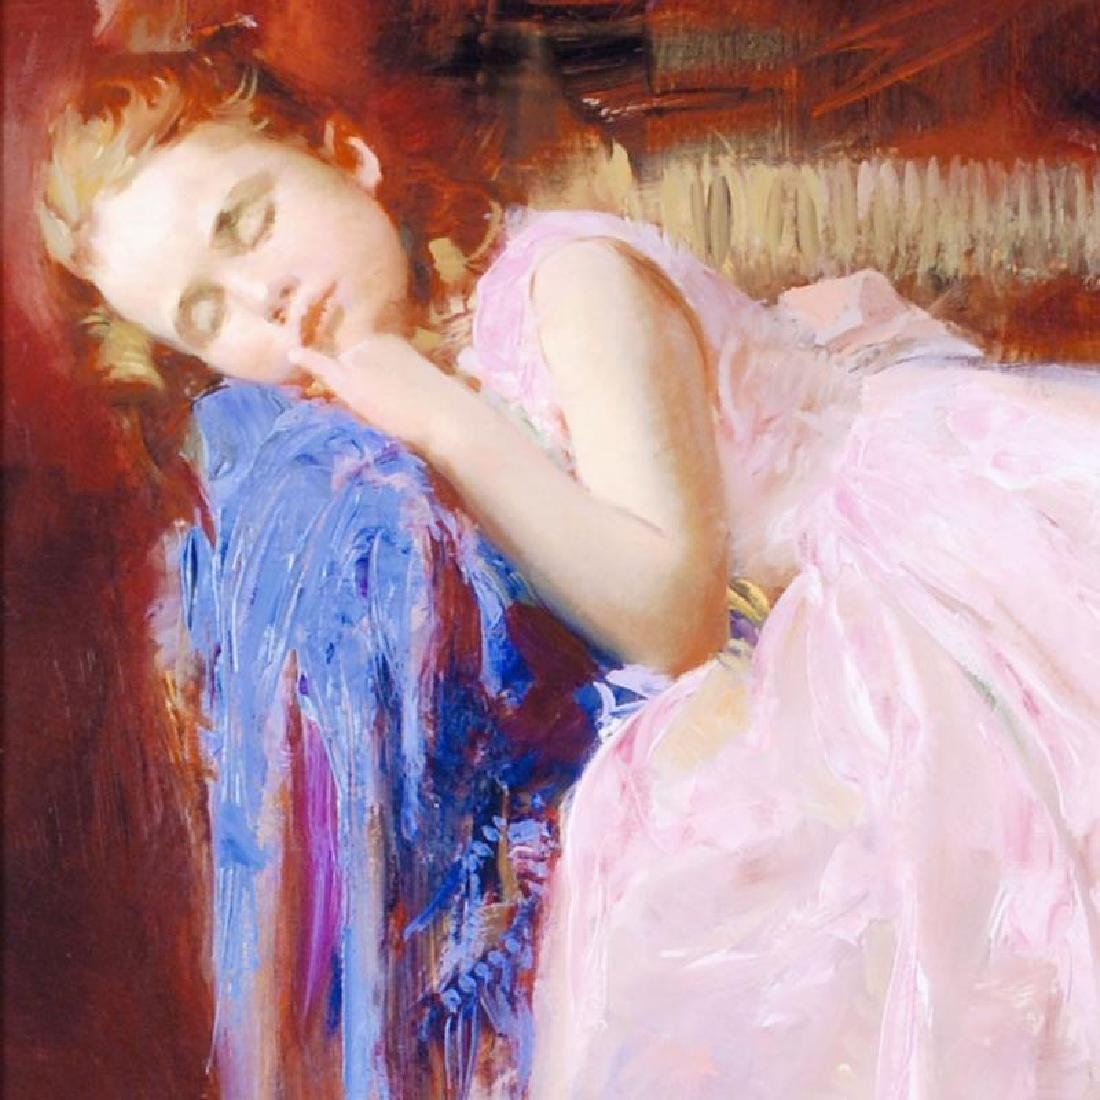 Party Dreams by Pino (1939-2010) - 2